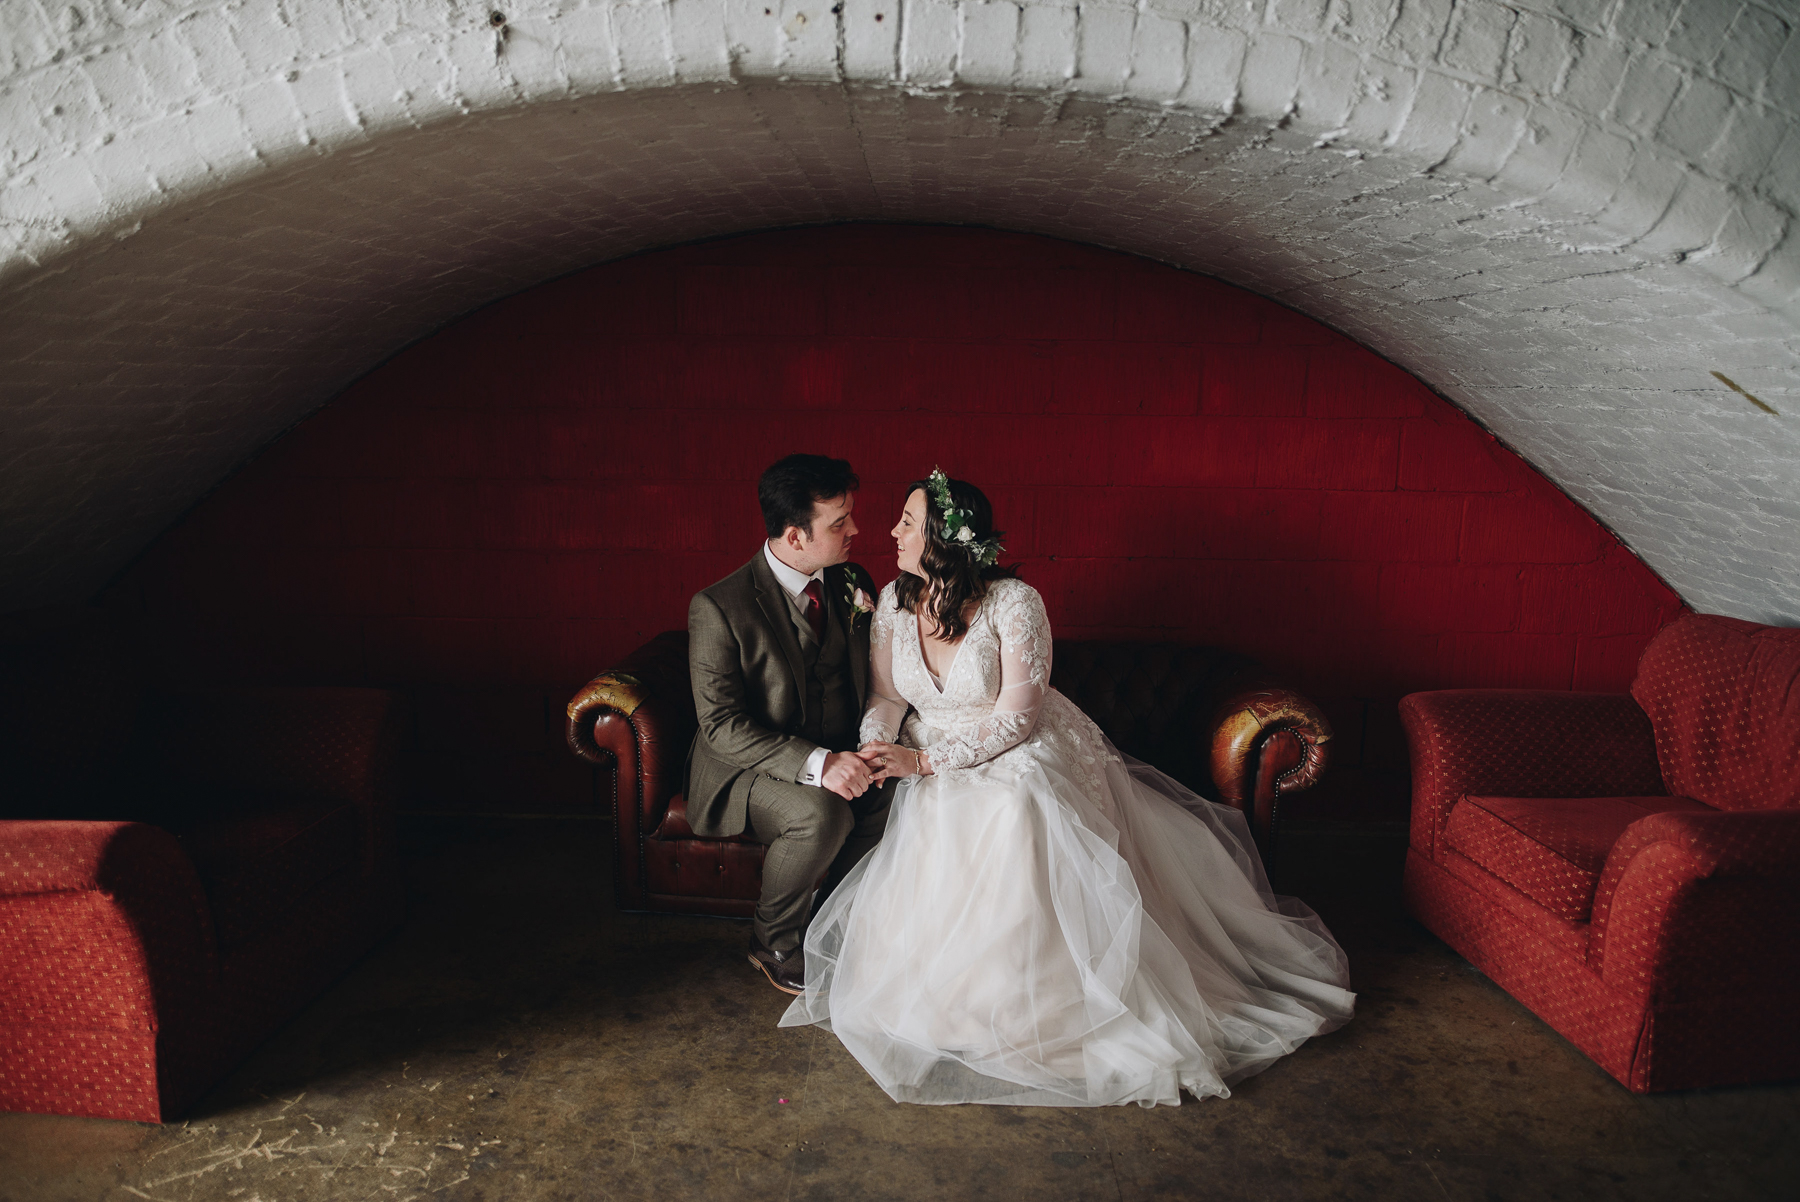 Alternative_Manchester_Wedding_Photography_The_Pin-Up_Bride_Photography-30.jpg